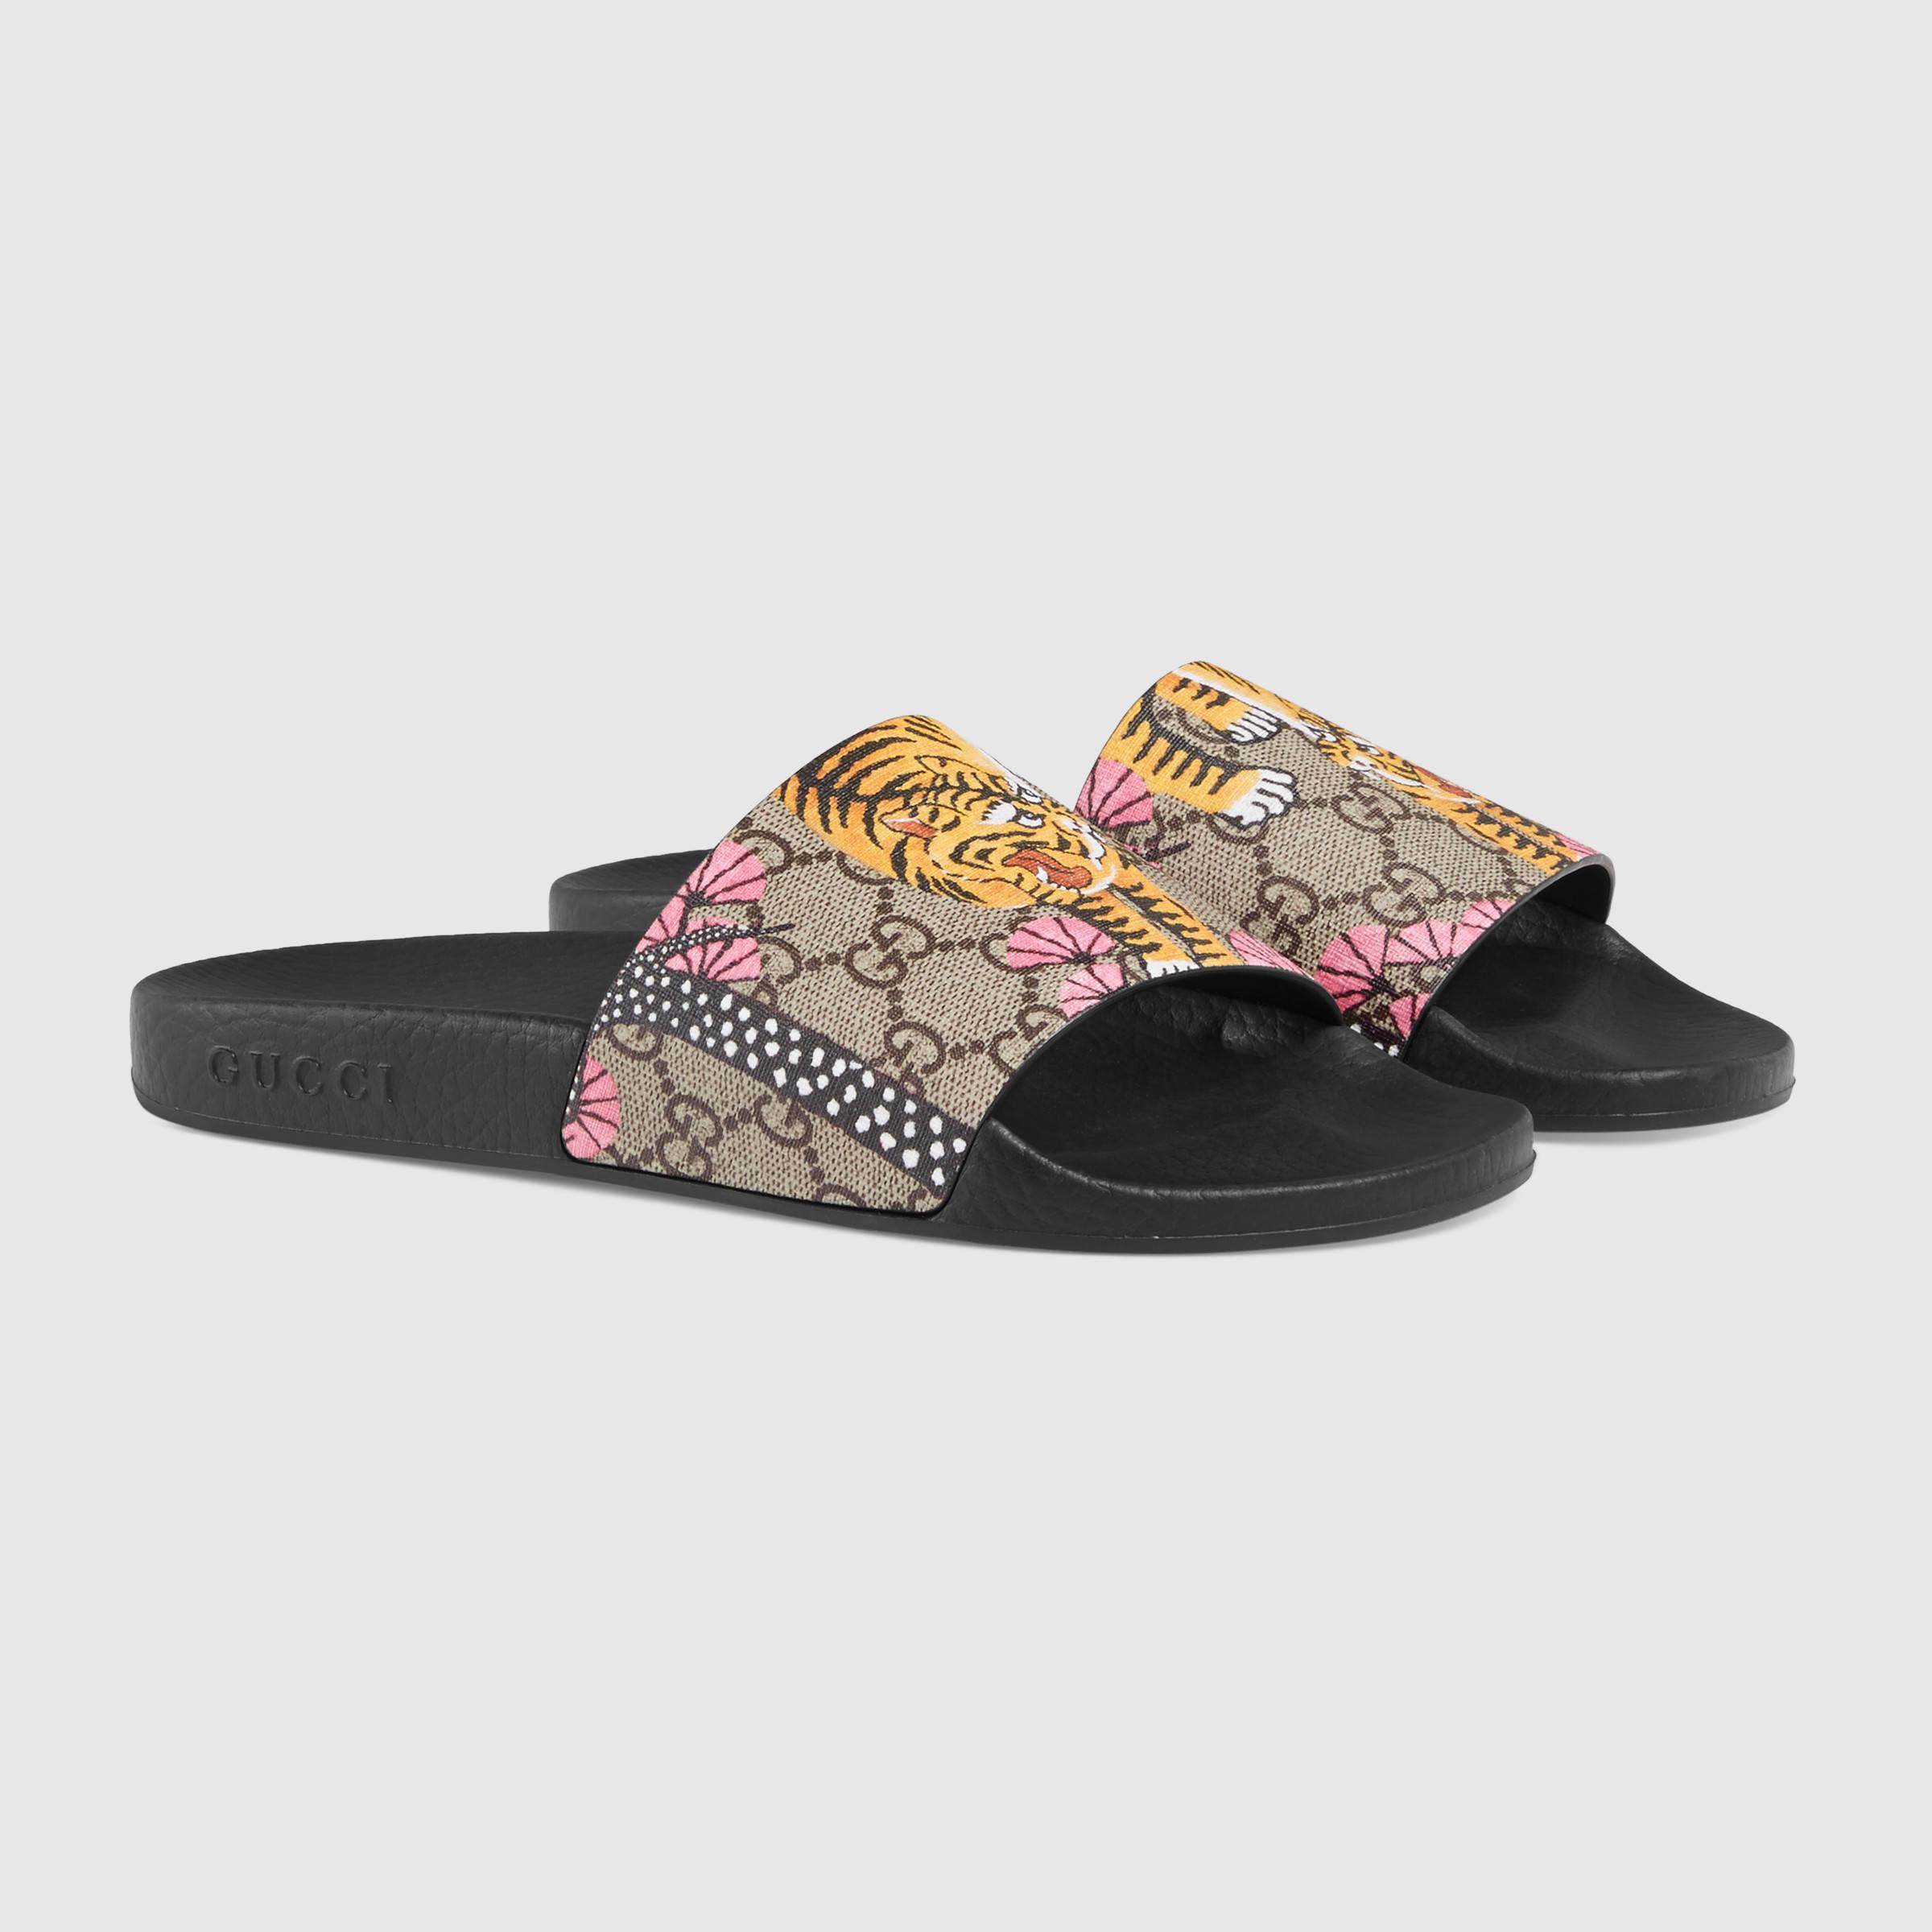 9e7f8d5ee47 Lyst - Gucci Pursuit Bengal Slide Sandal